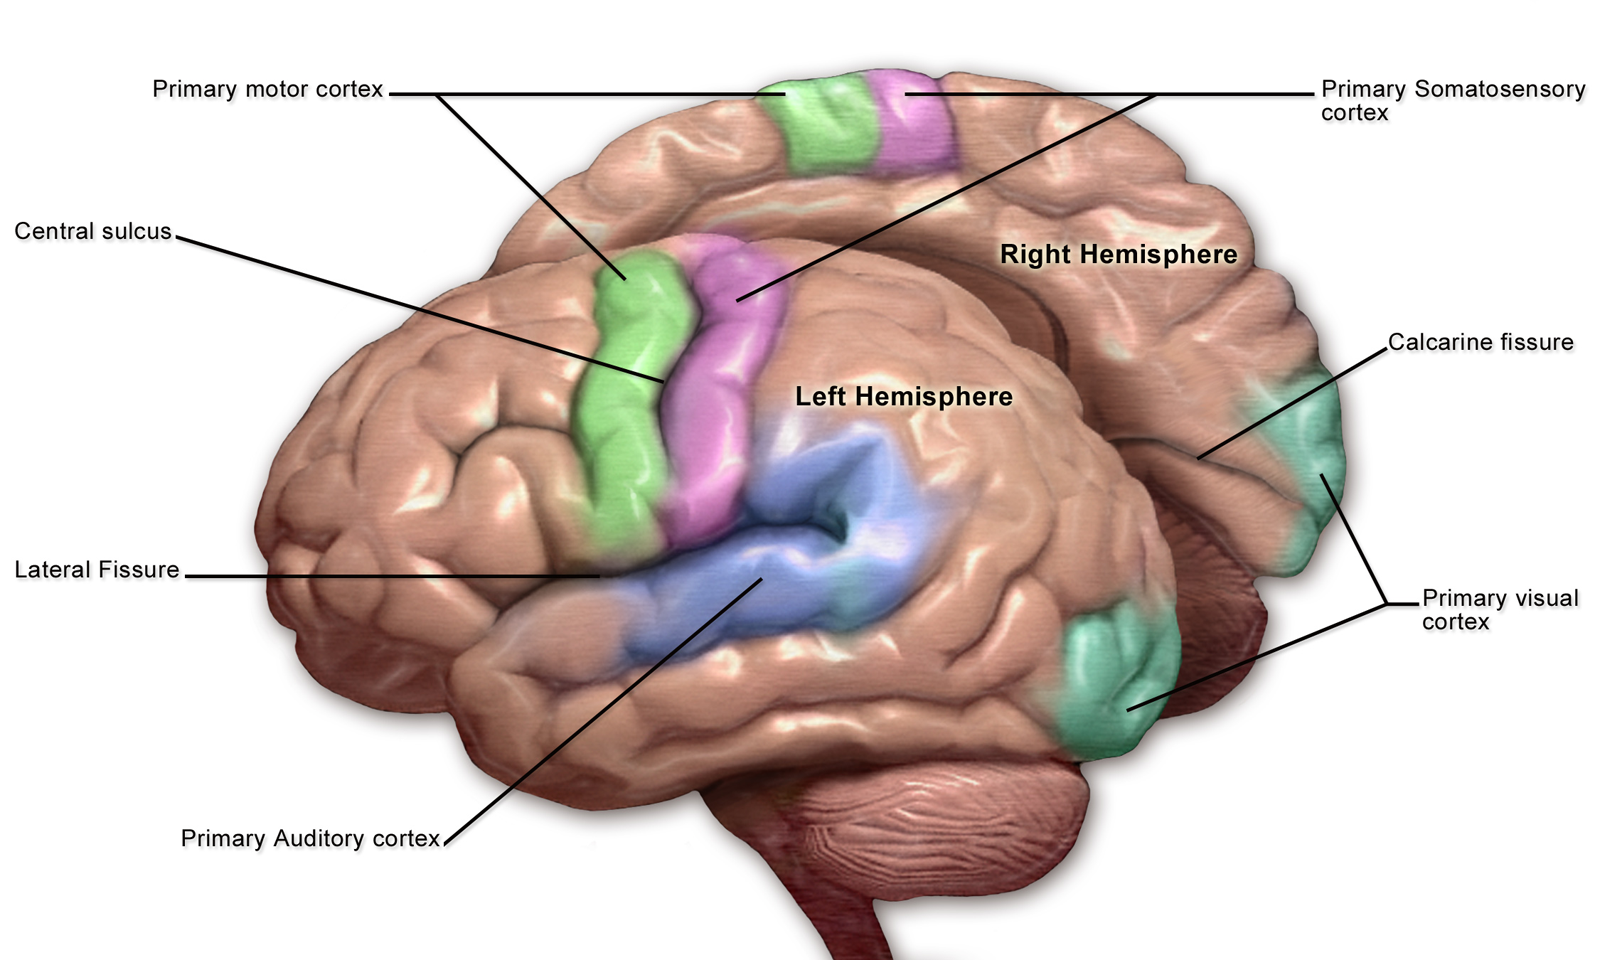 Diagram of the brain featuring the cortexes related to the different senses